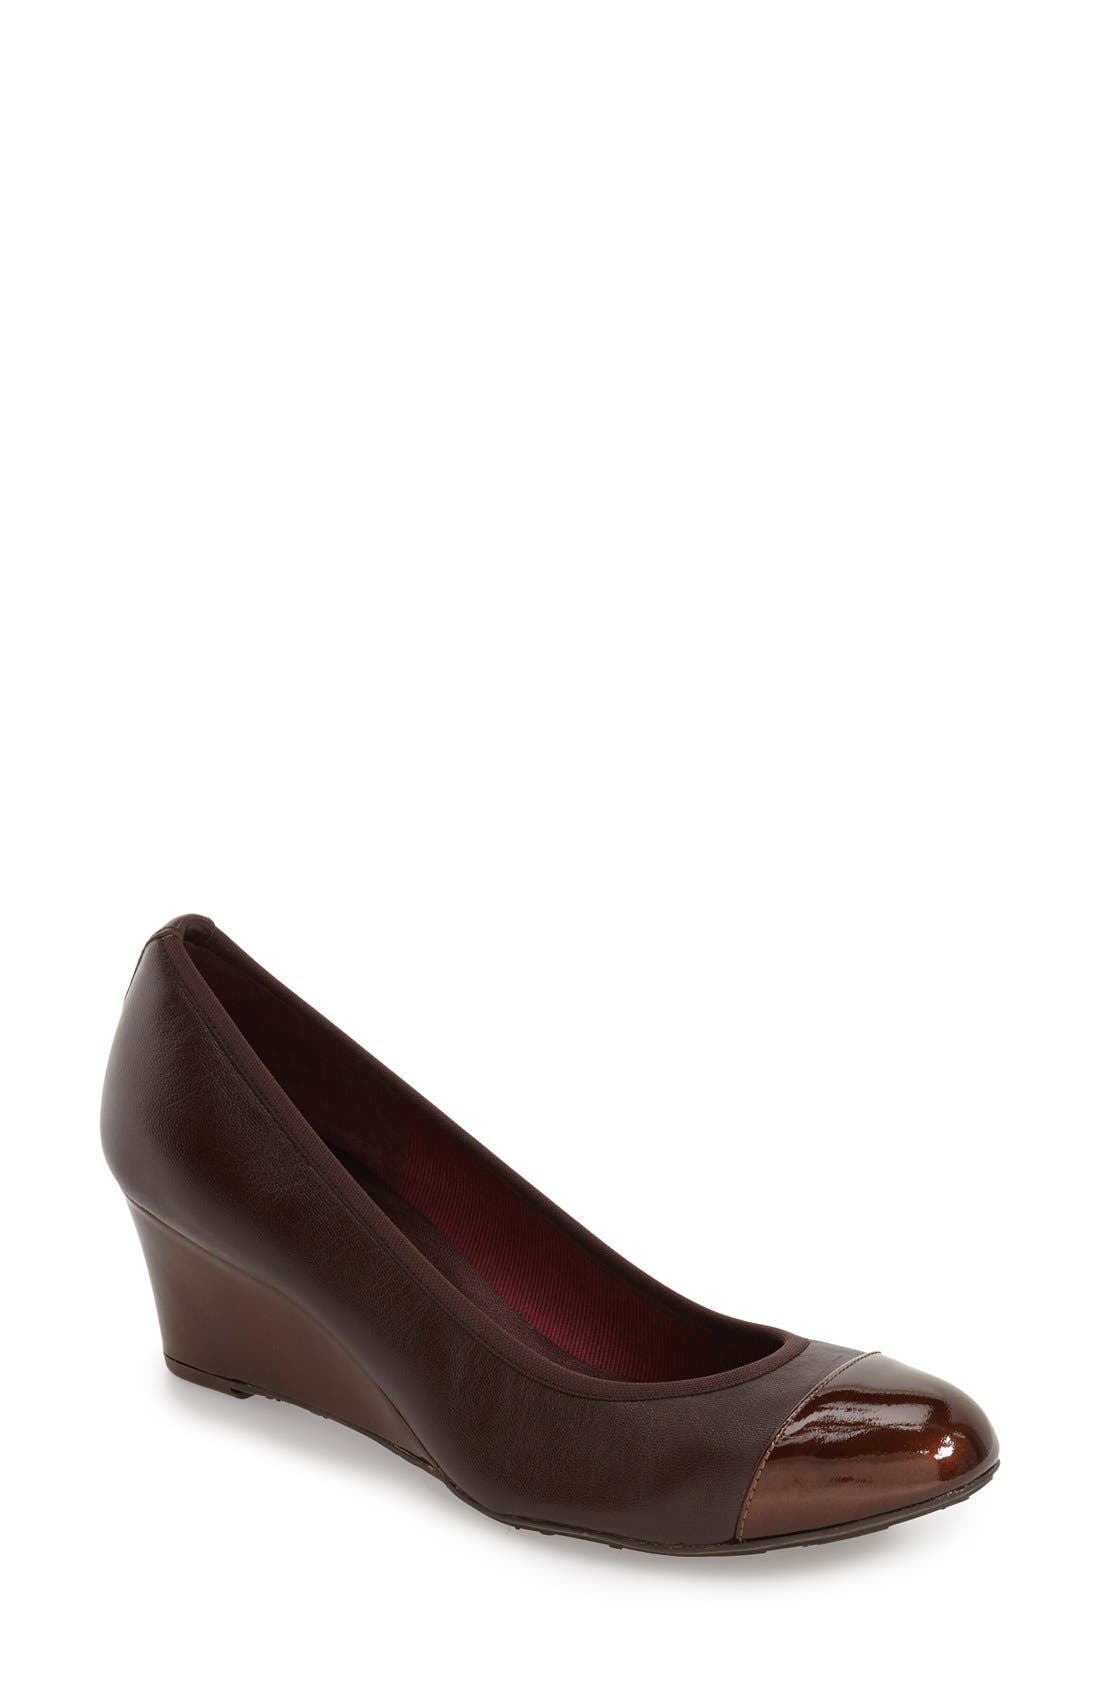 Alternate Image 1 Selected - French Sole 'Juggle' Wedge Pump